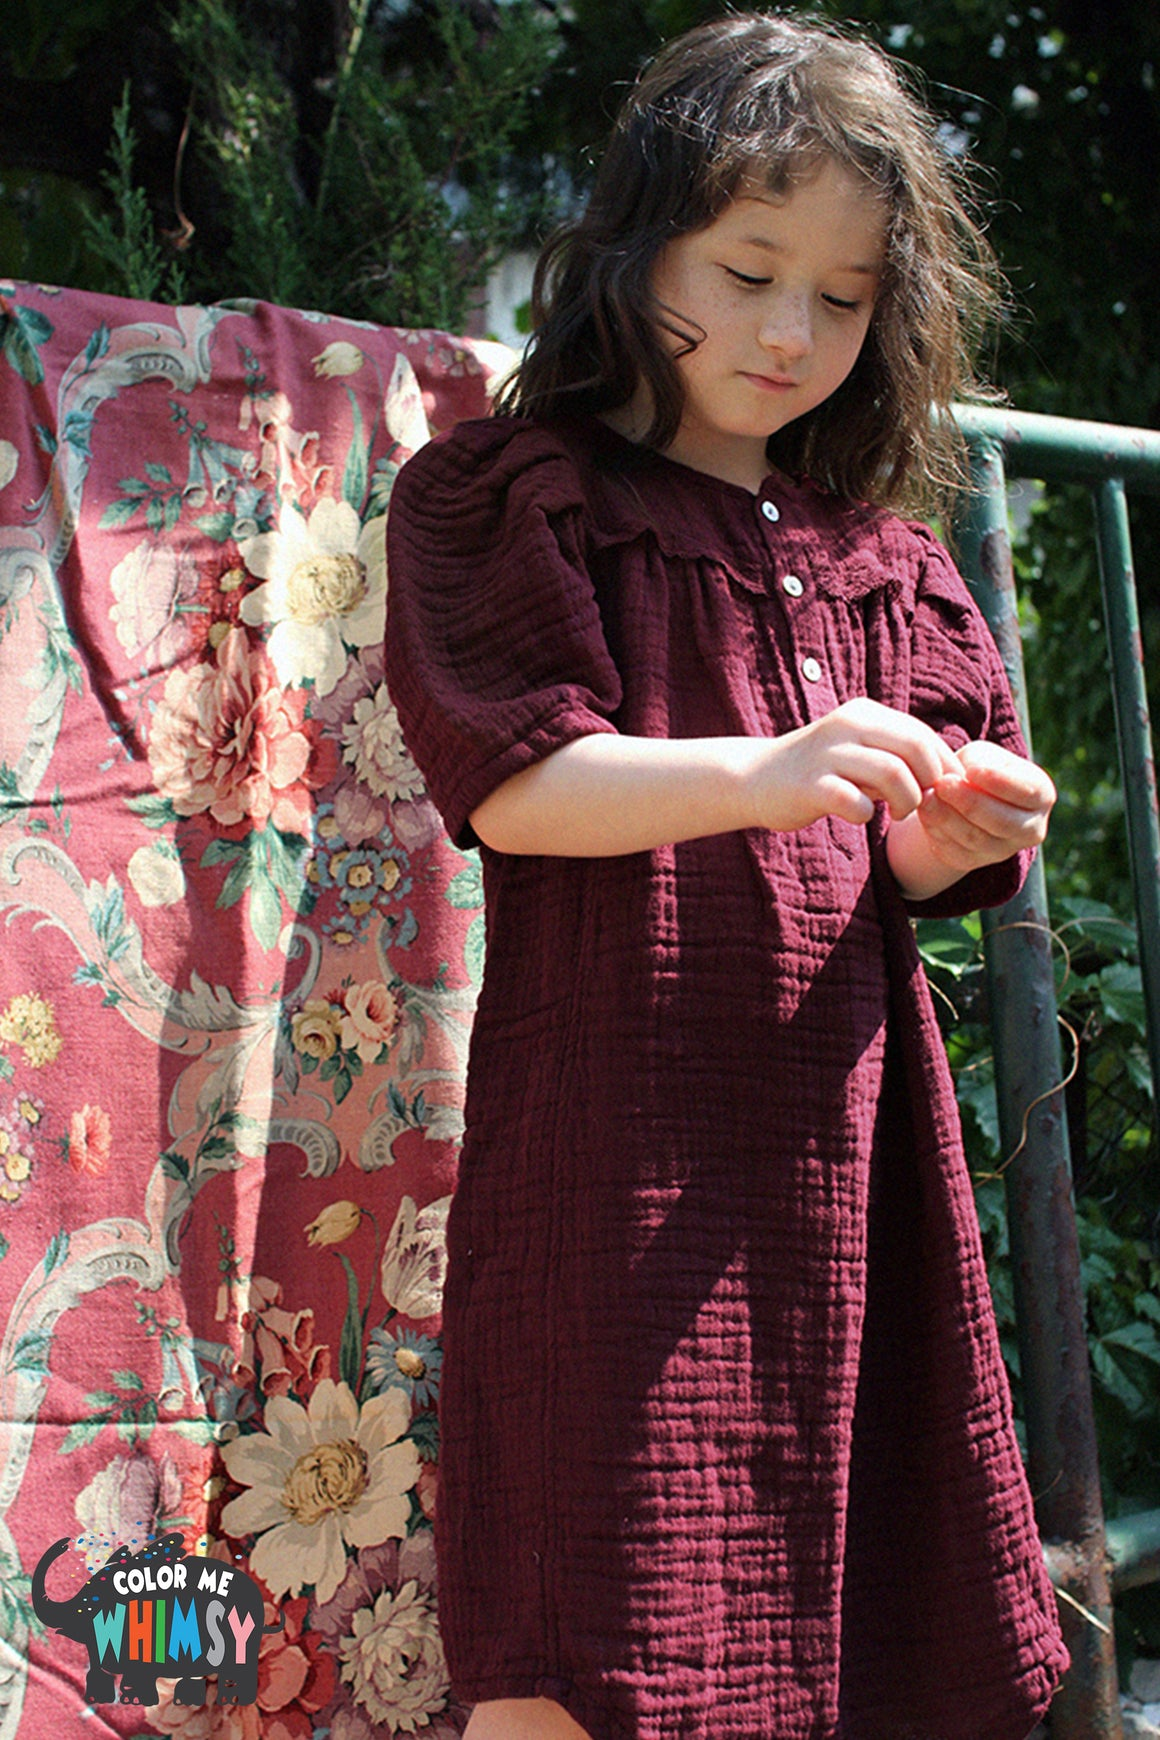 SCON Ashre Dress at Color Me WHIMSY Hip Kid's Fashion Ethically Made in South Korea